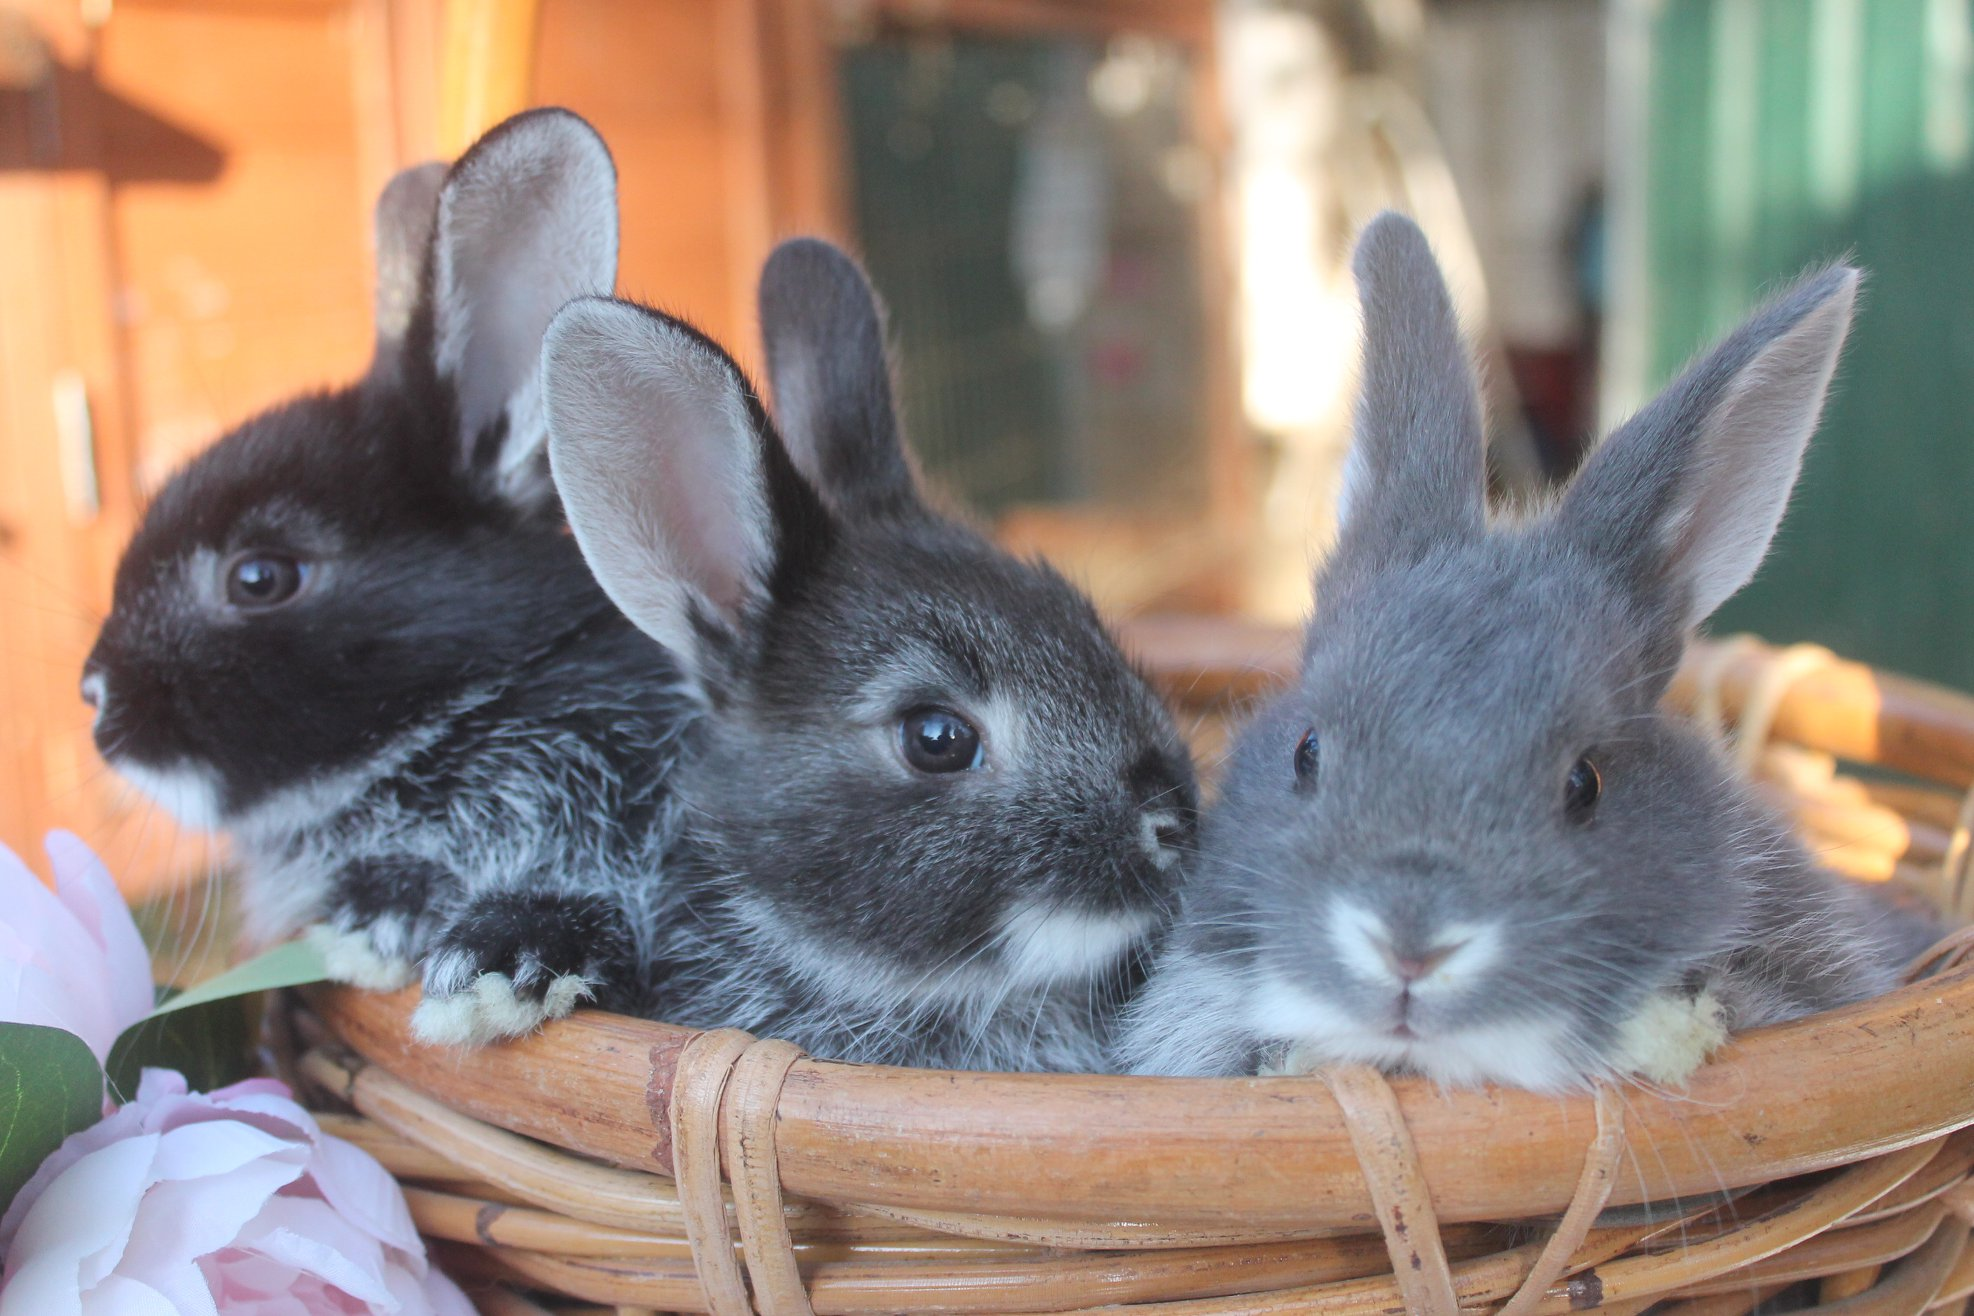 Silver fox babies - super rare rabbits.